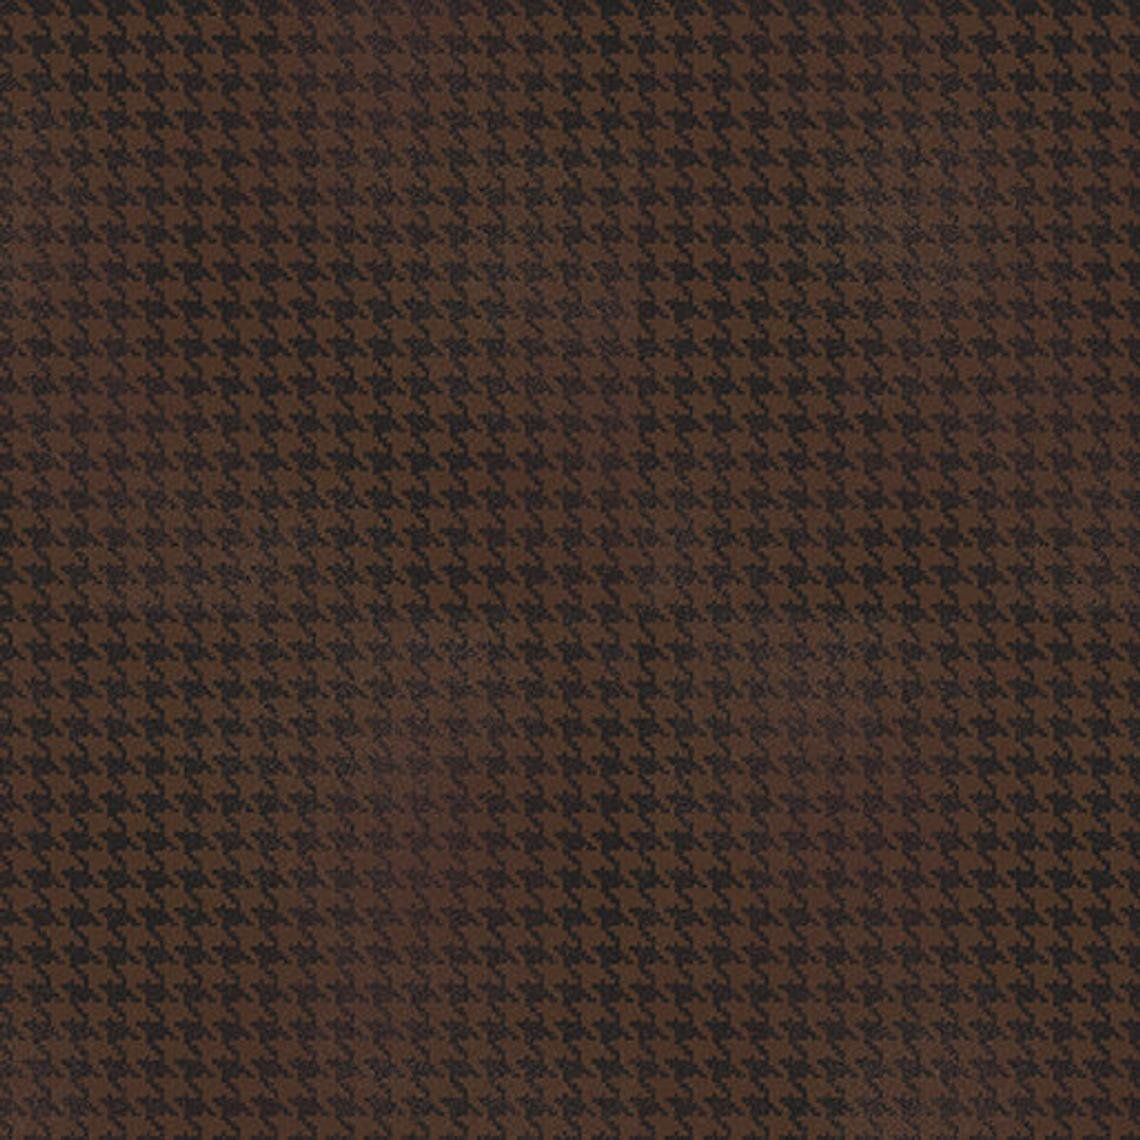 Blushed Houndstooth - Brown Fabric